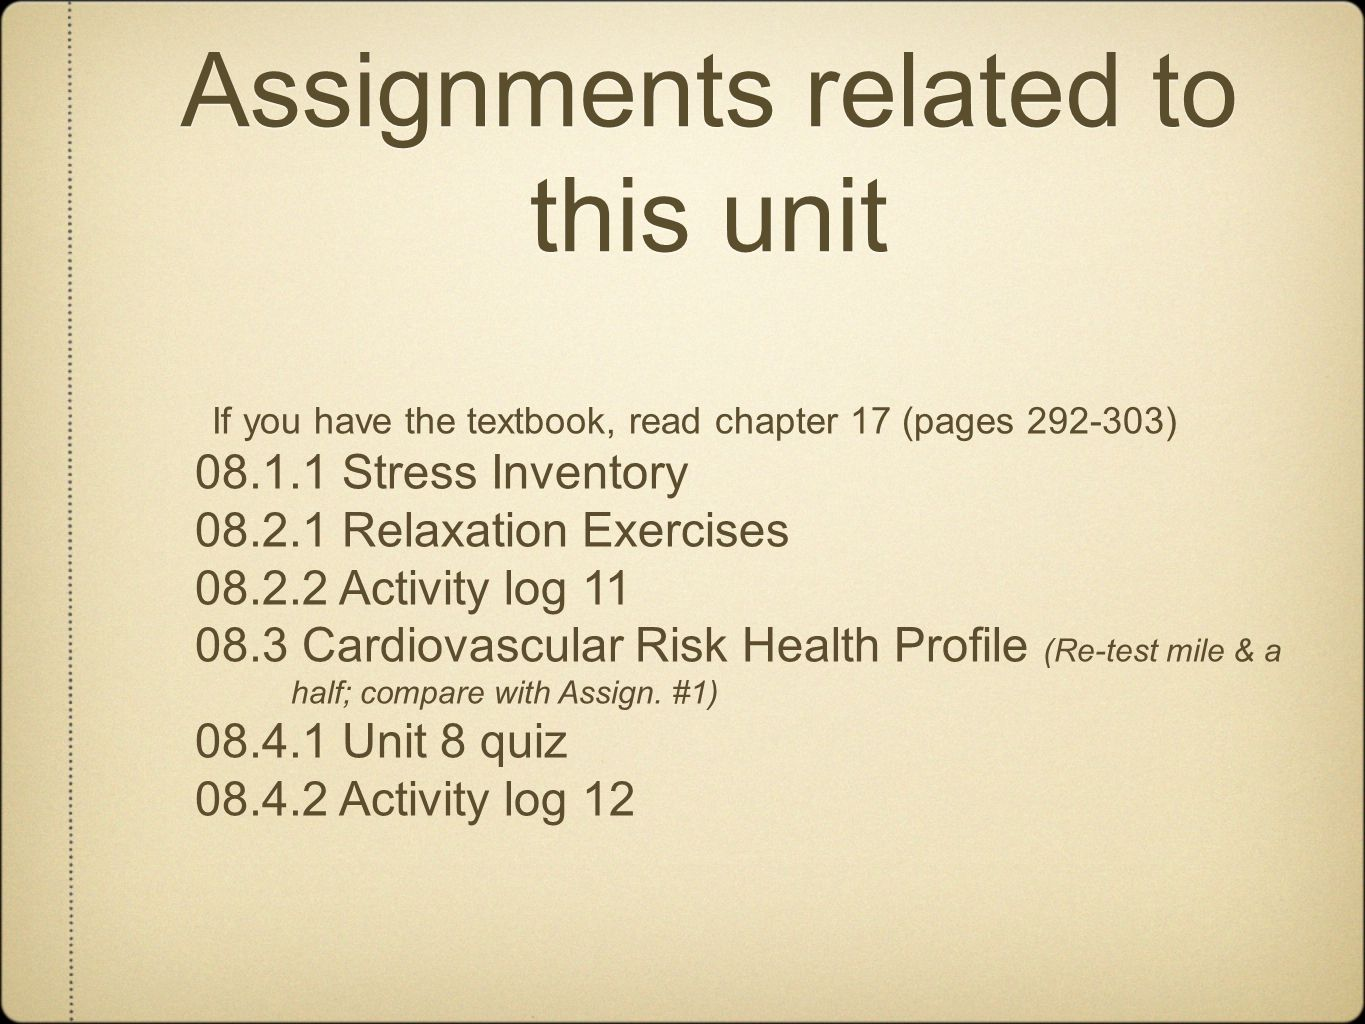 Assignments related to this unit If you have the textbook, read chapter 17 (pages 292-303) 08.1.1 Stress Inventory 08.2.1 Relaxation Exercises 08.2.2